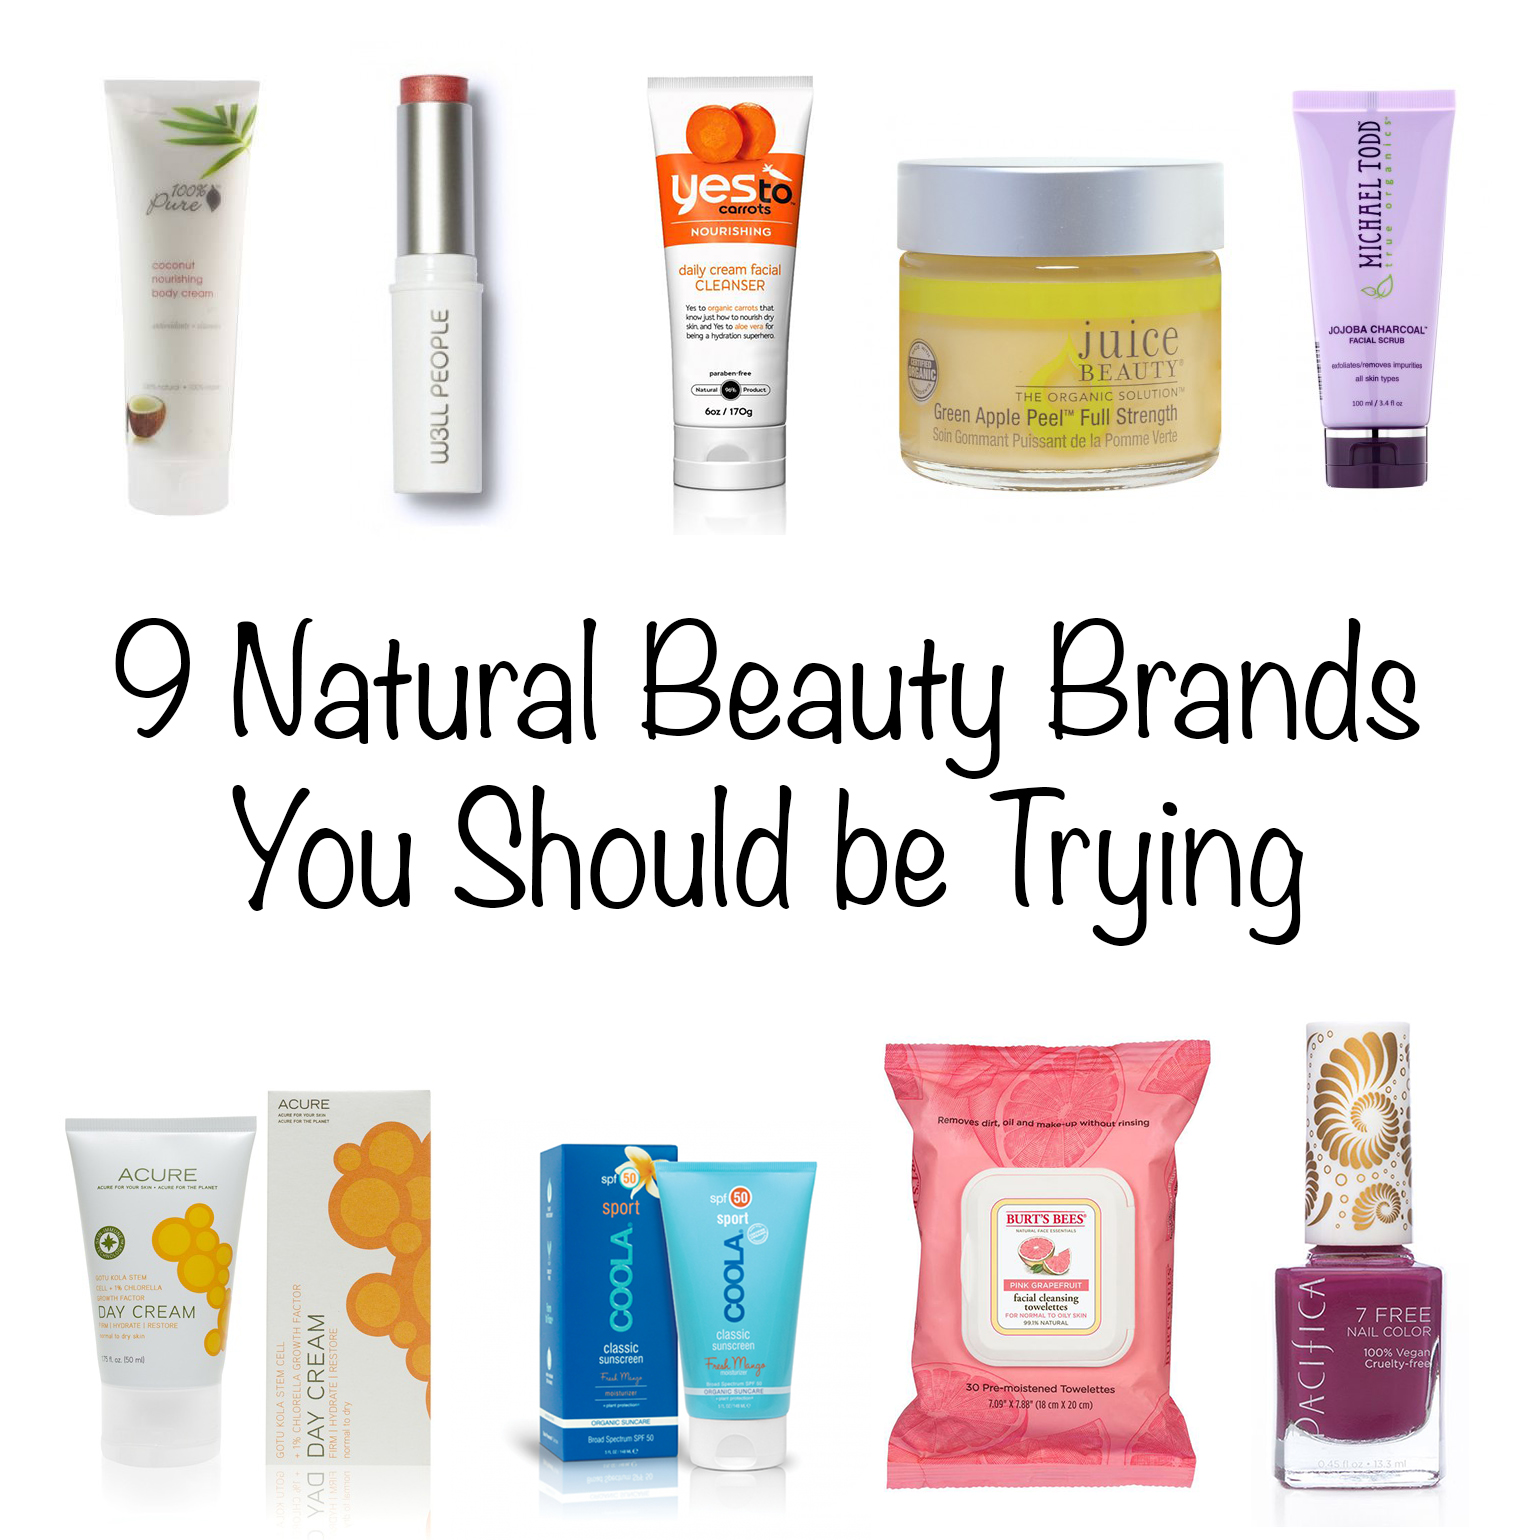 9 Natural Beauty Brands You Should Be Trying